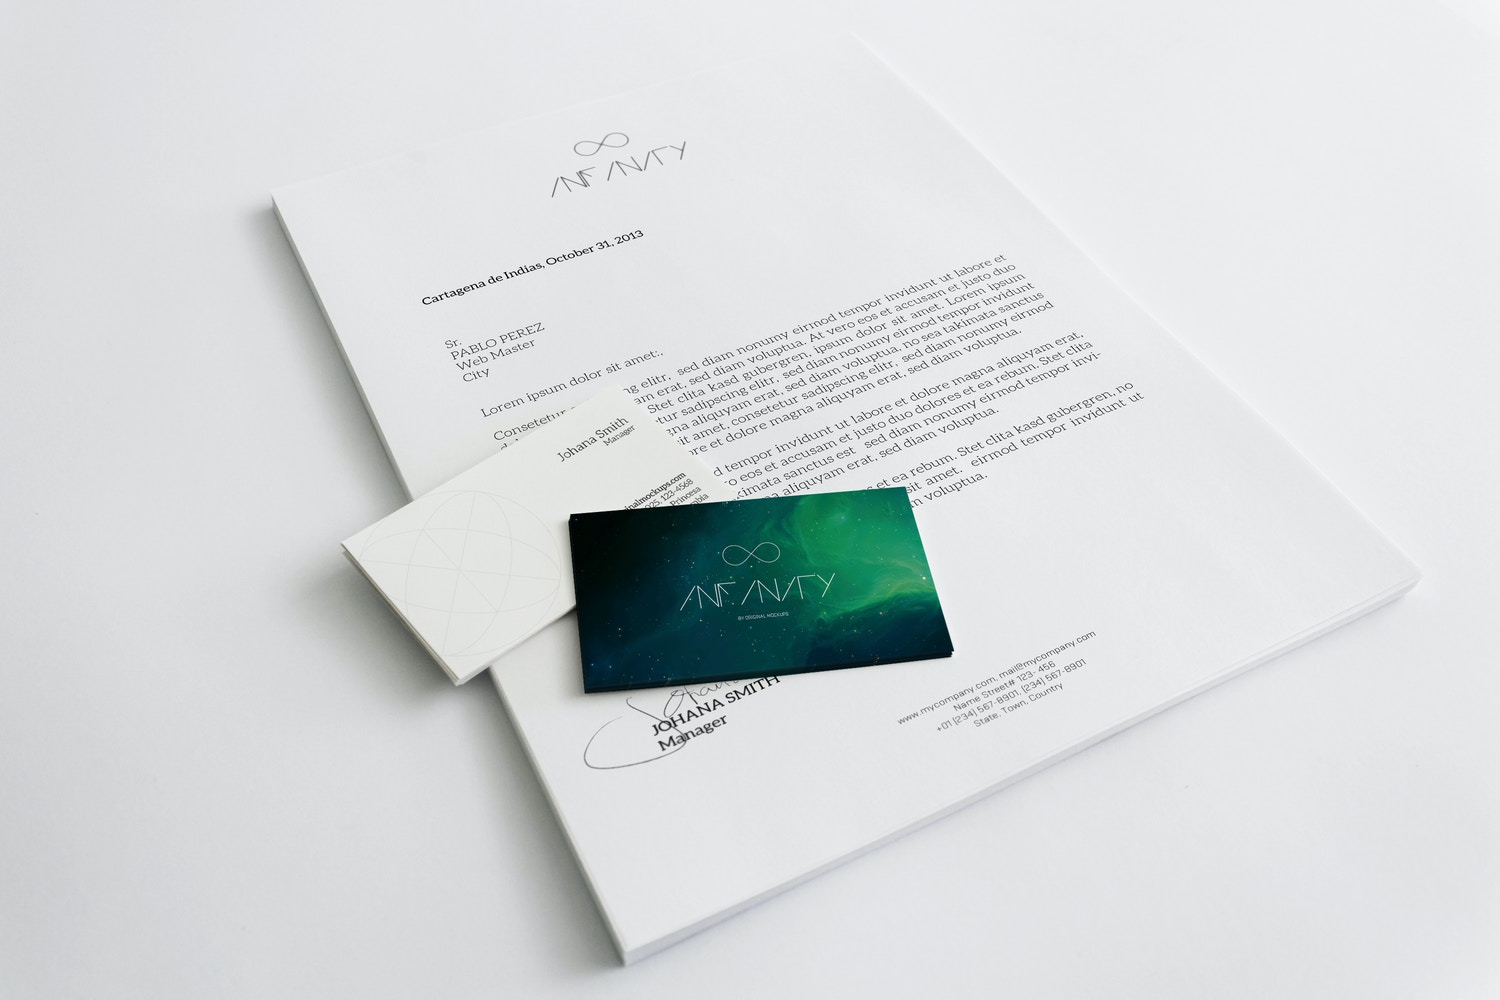 A4 Letterhead and Business Cards Mockup by Original Mockups on Original Mockups